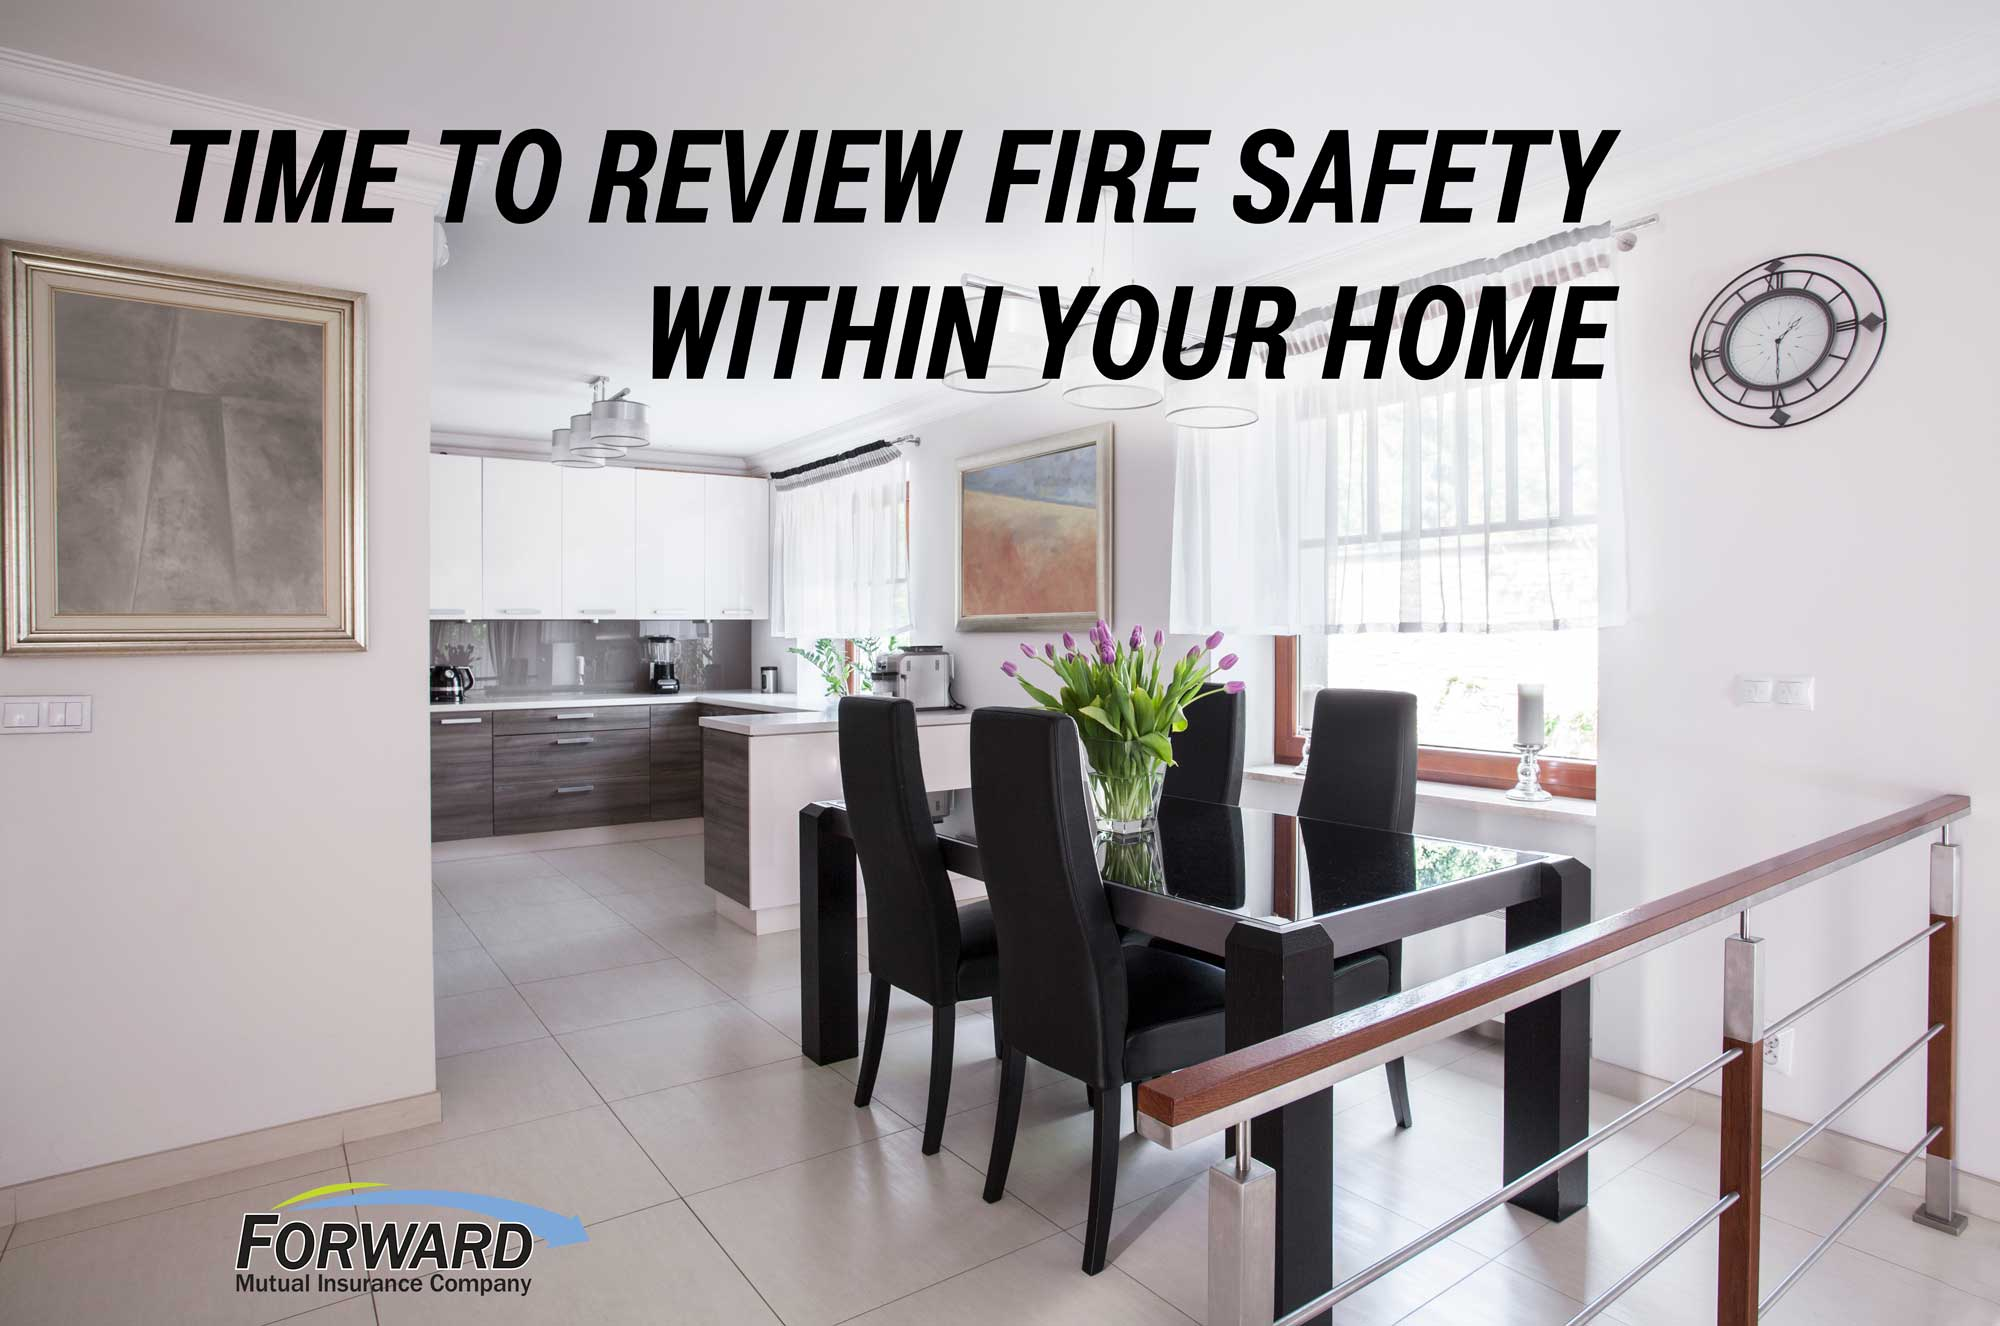 Modern homes need extra fire safety measures